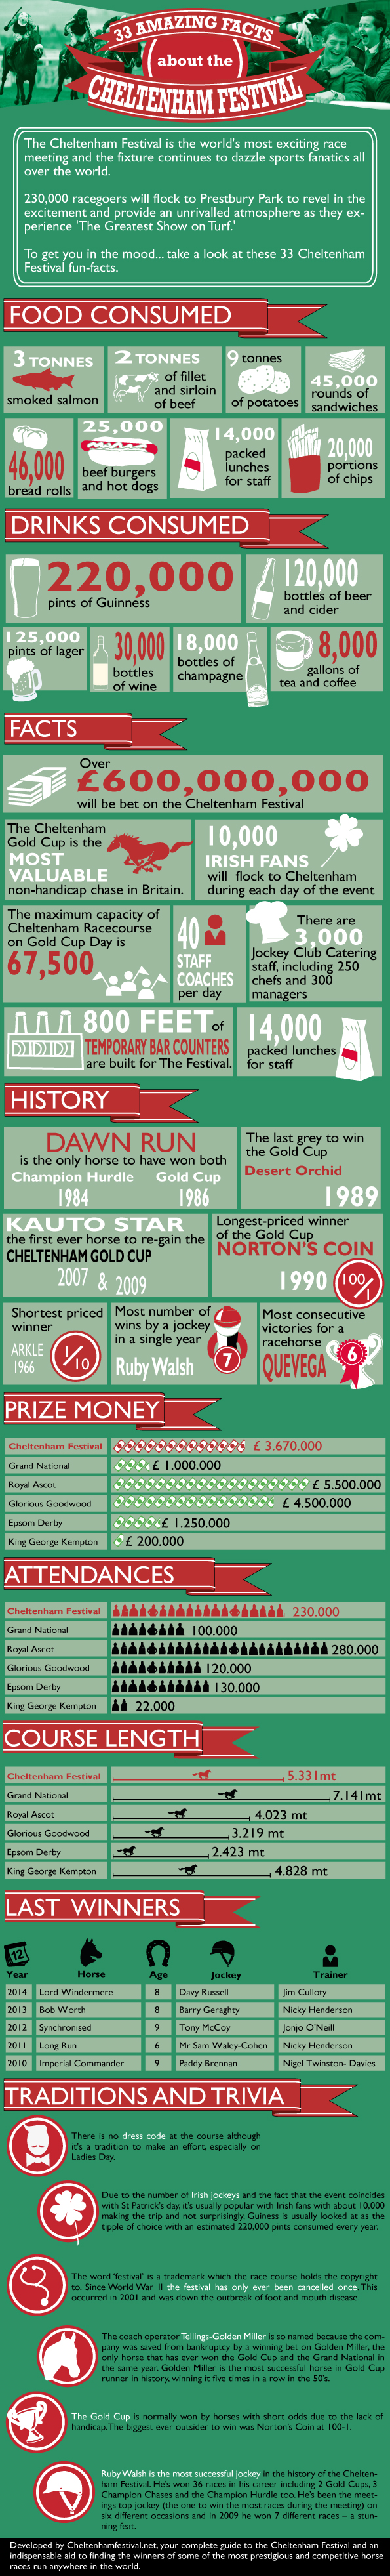 33 Amazing Facts About the Cheltenham Festival